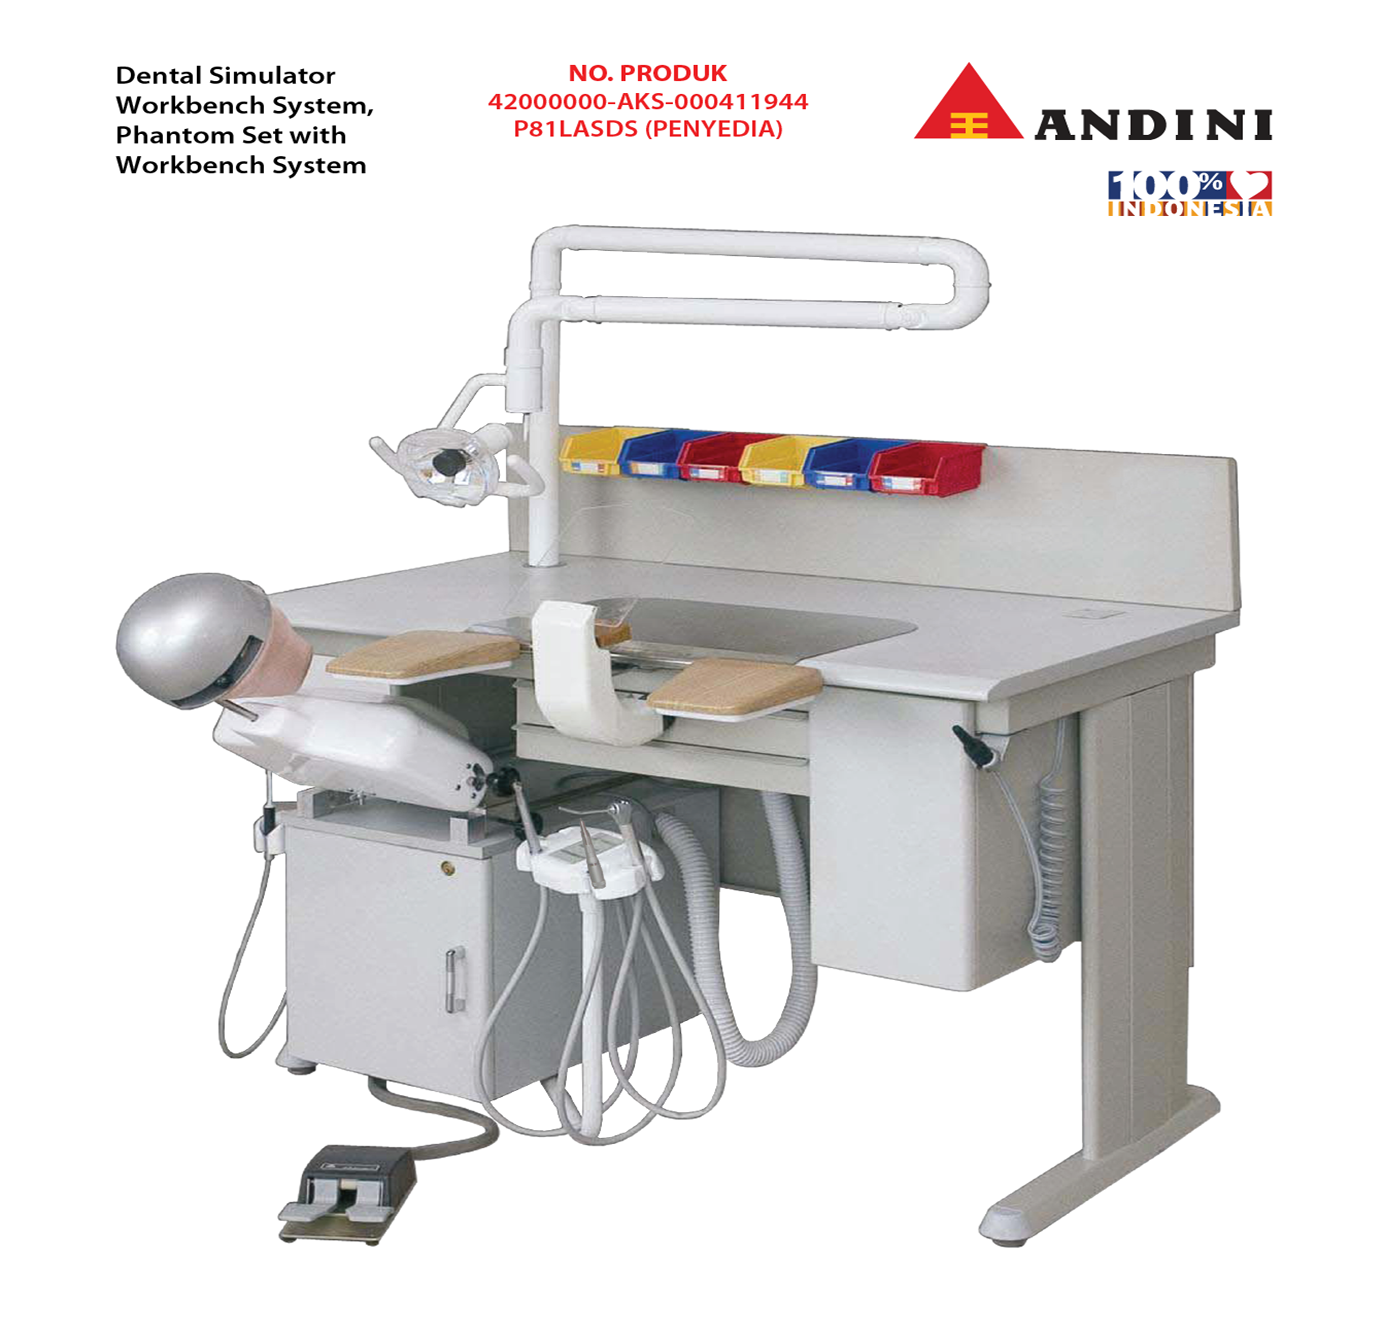 phantom-set-with-workbench-system-e-catalog-01